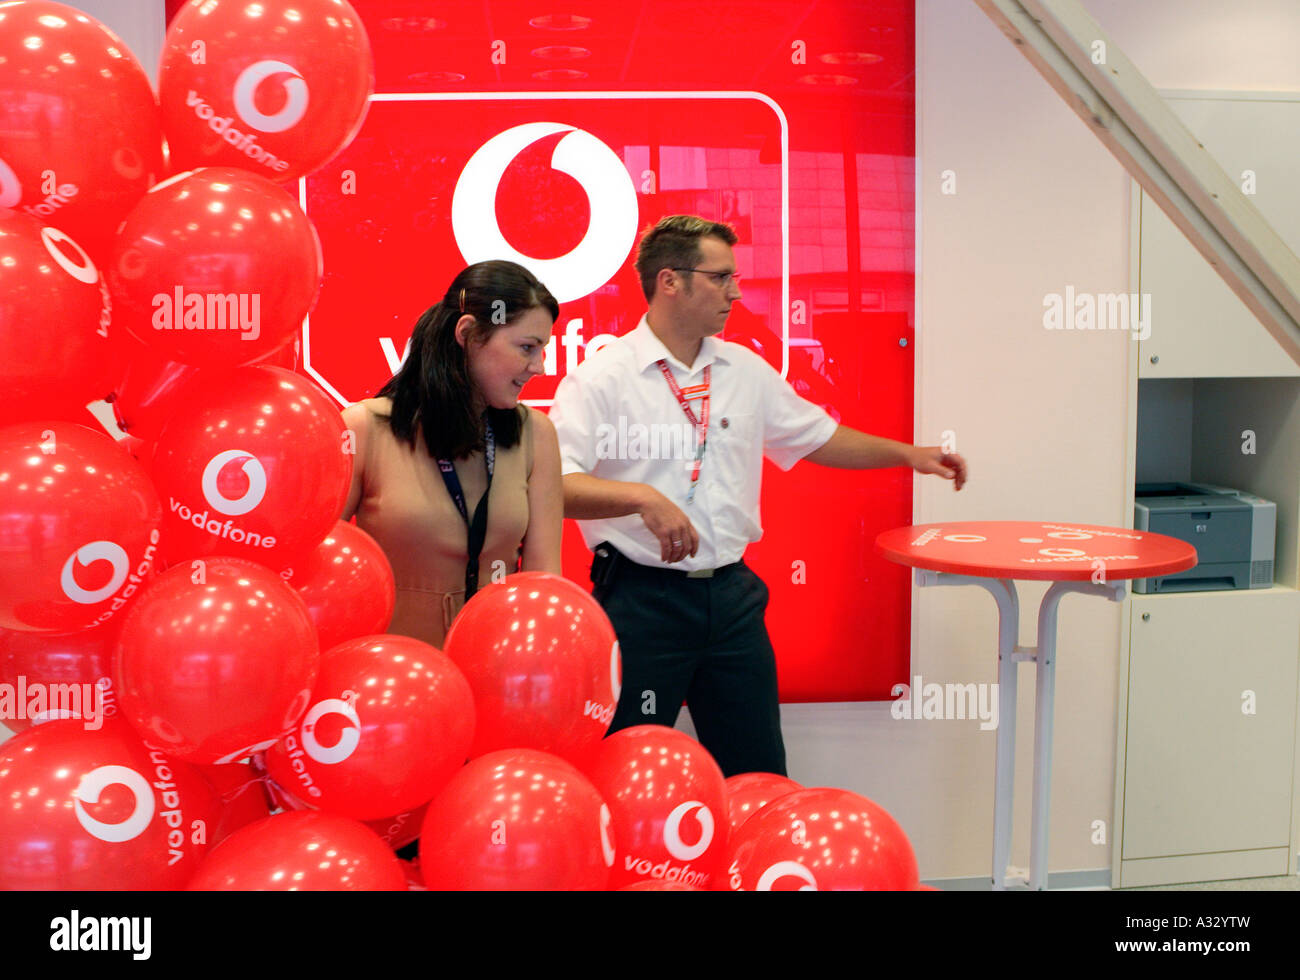 The grand opening of a Vodafone branch office, Berlin, Germany - Stock Image